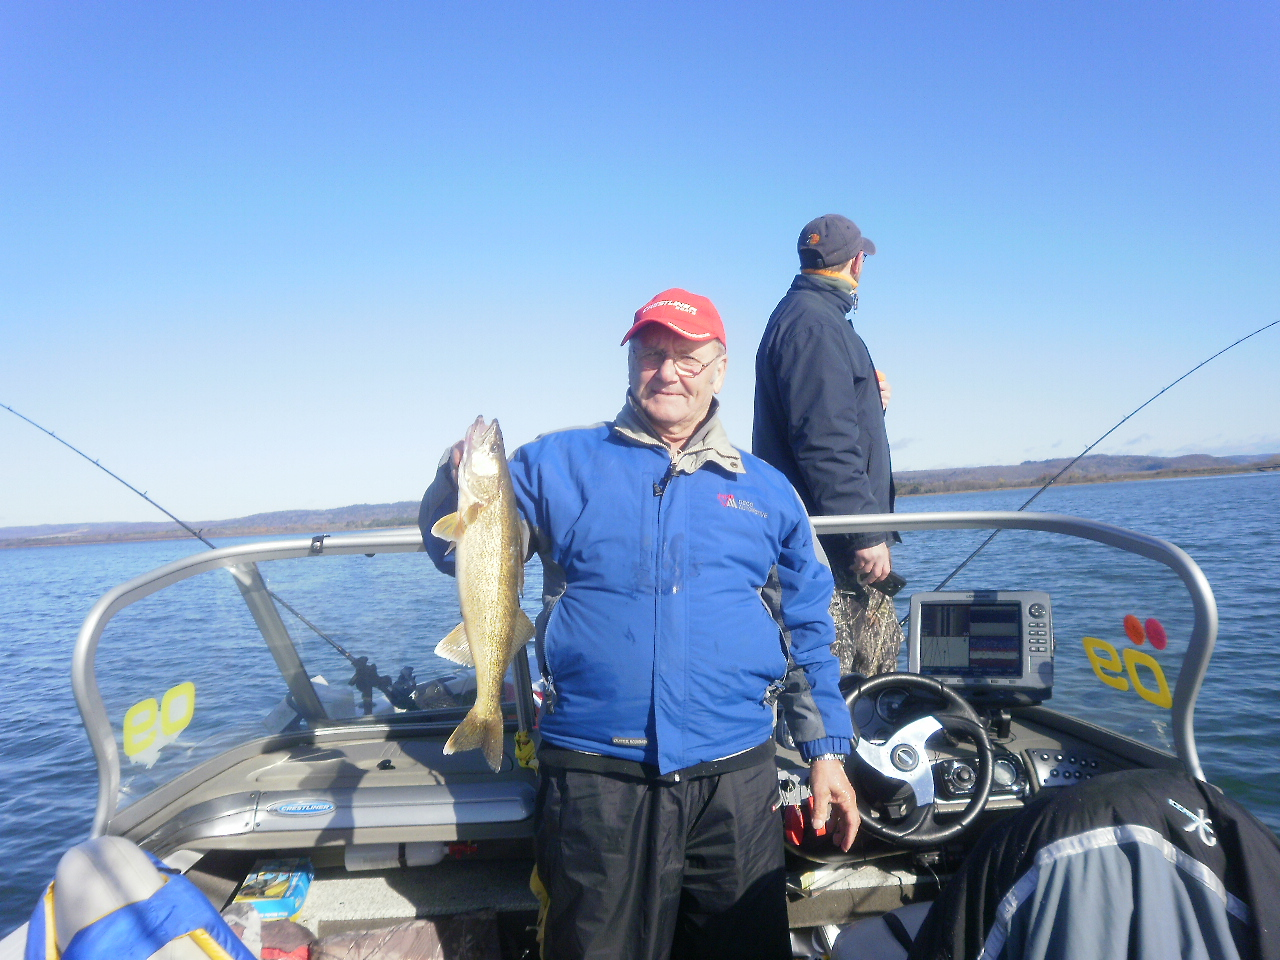 Hooked guide services walleye fishing in november in for Fishing in november